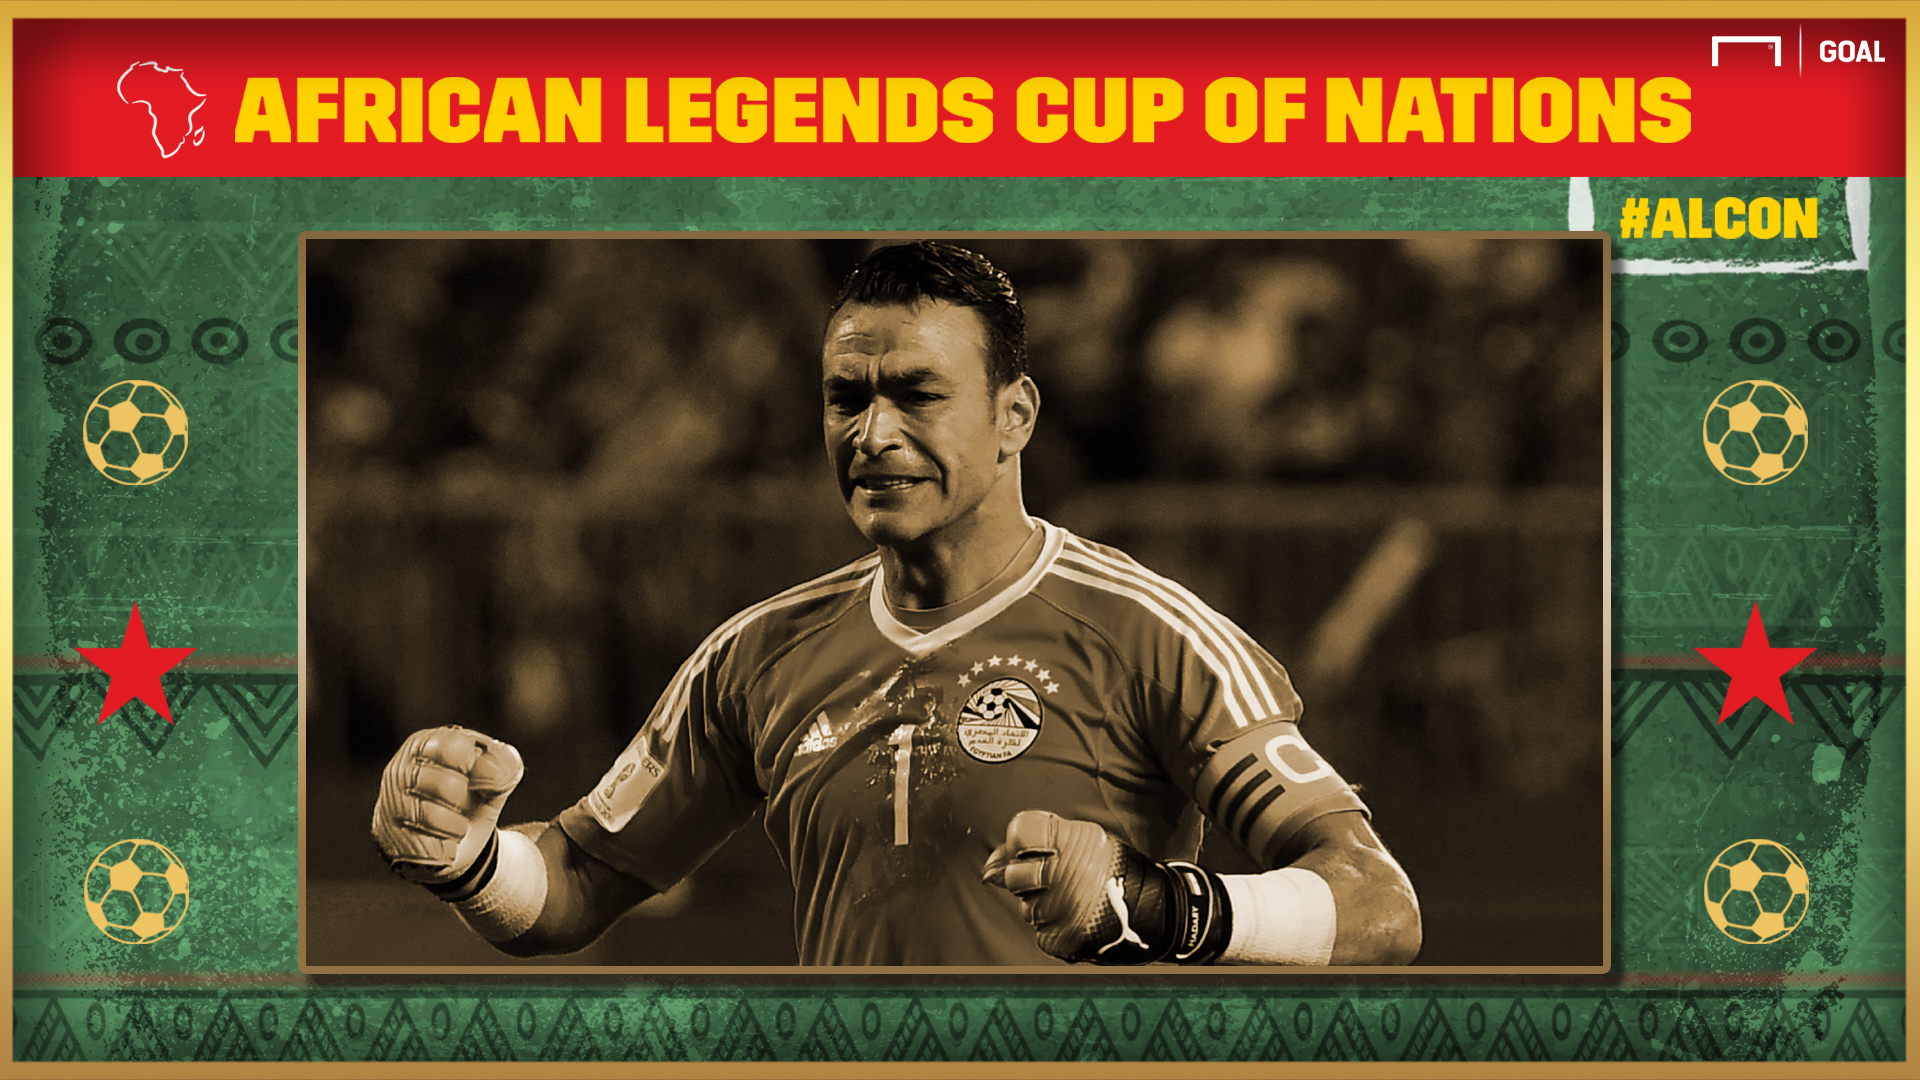 Is El-Hadary the most successful player in Africa Cup of Nations history?